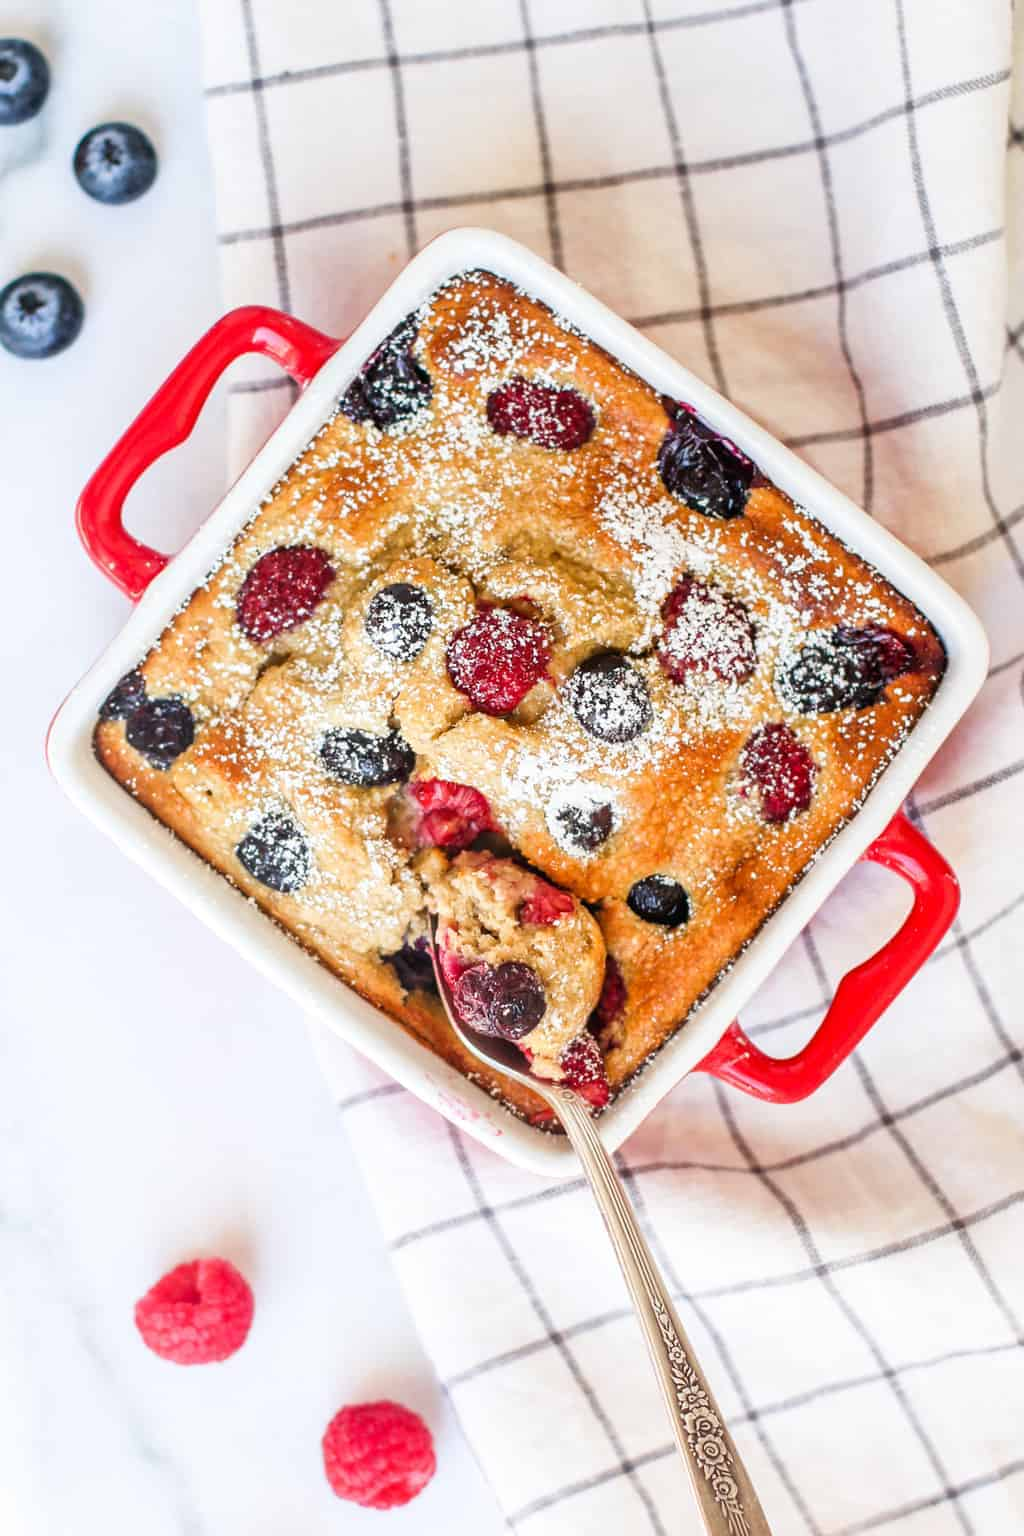 Baked Oats with berries